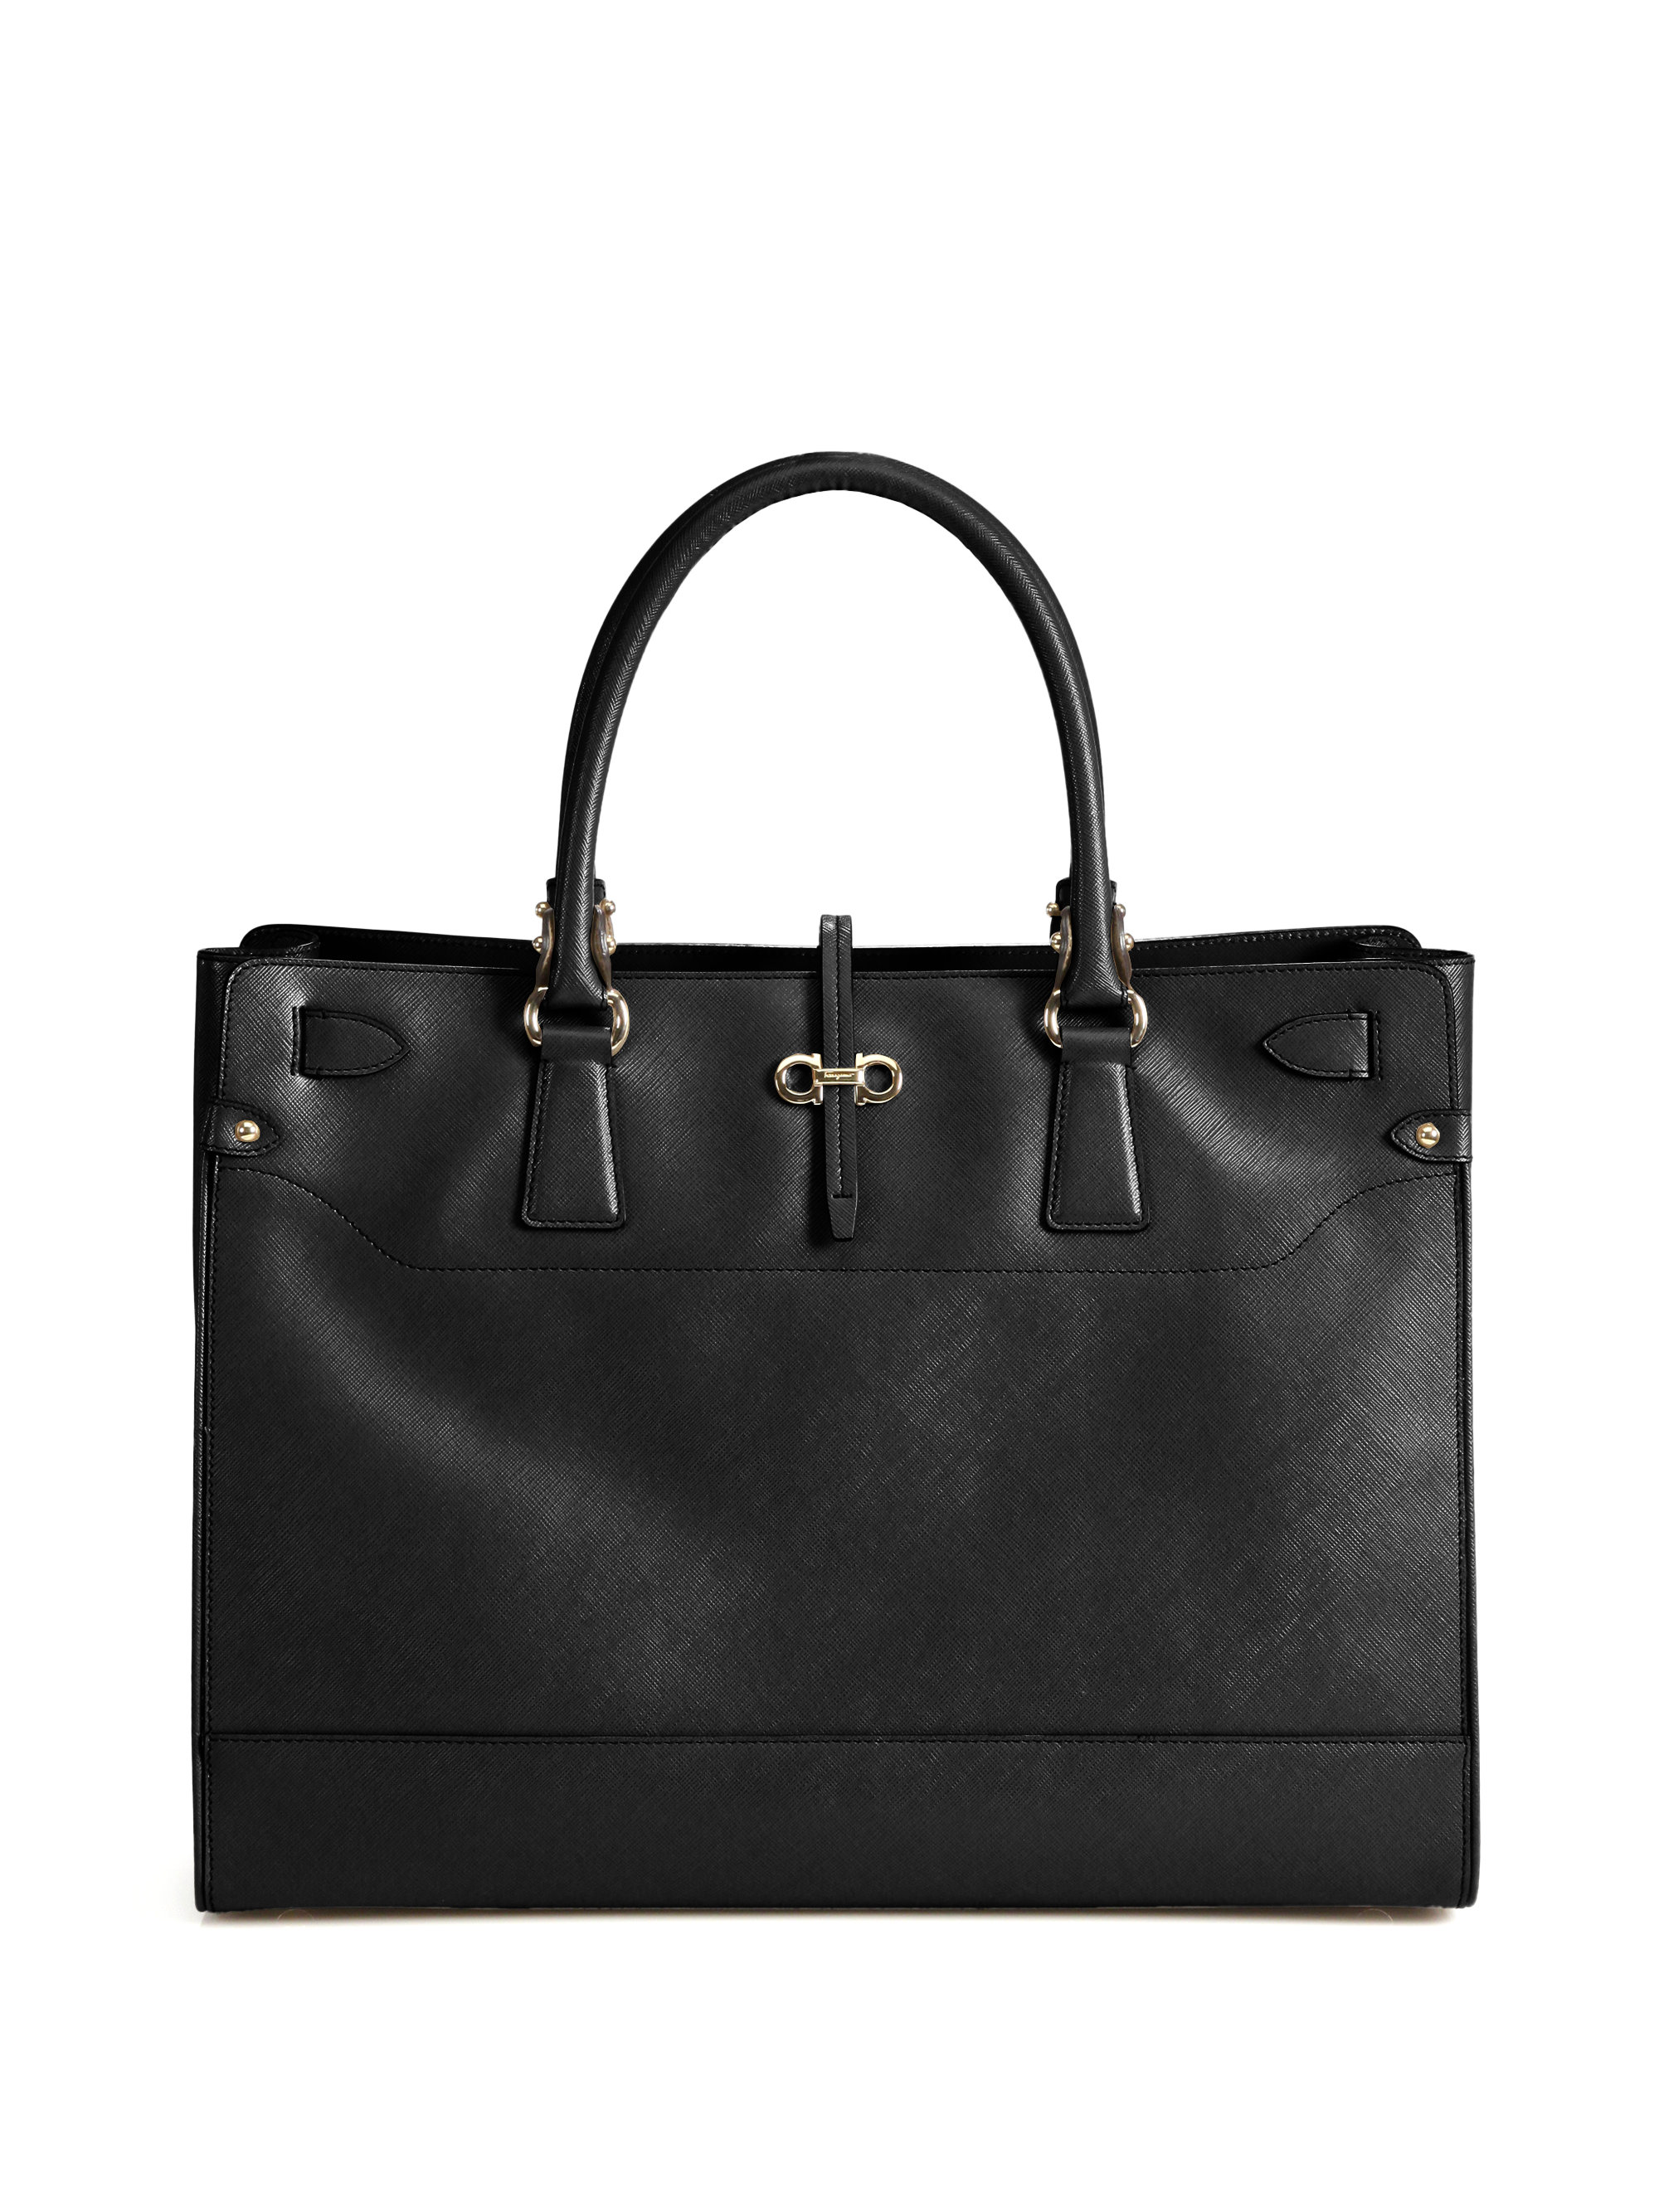 Ferragamo Briana Tote Bag in Black - Lyst